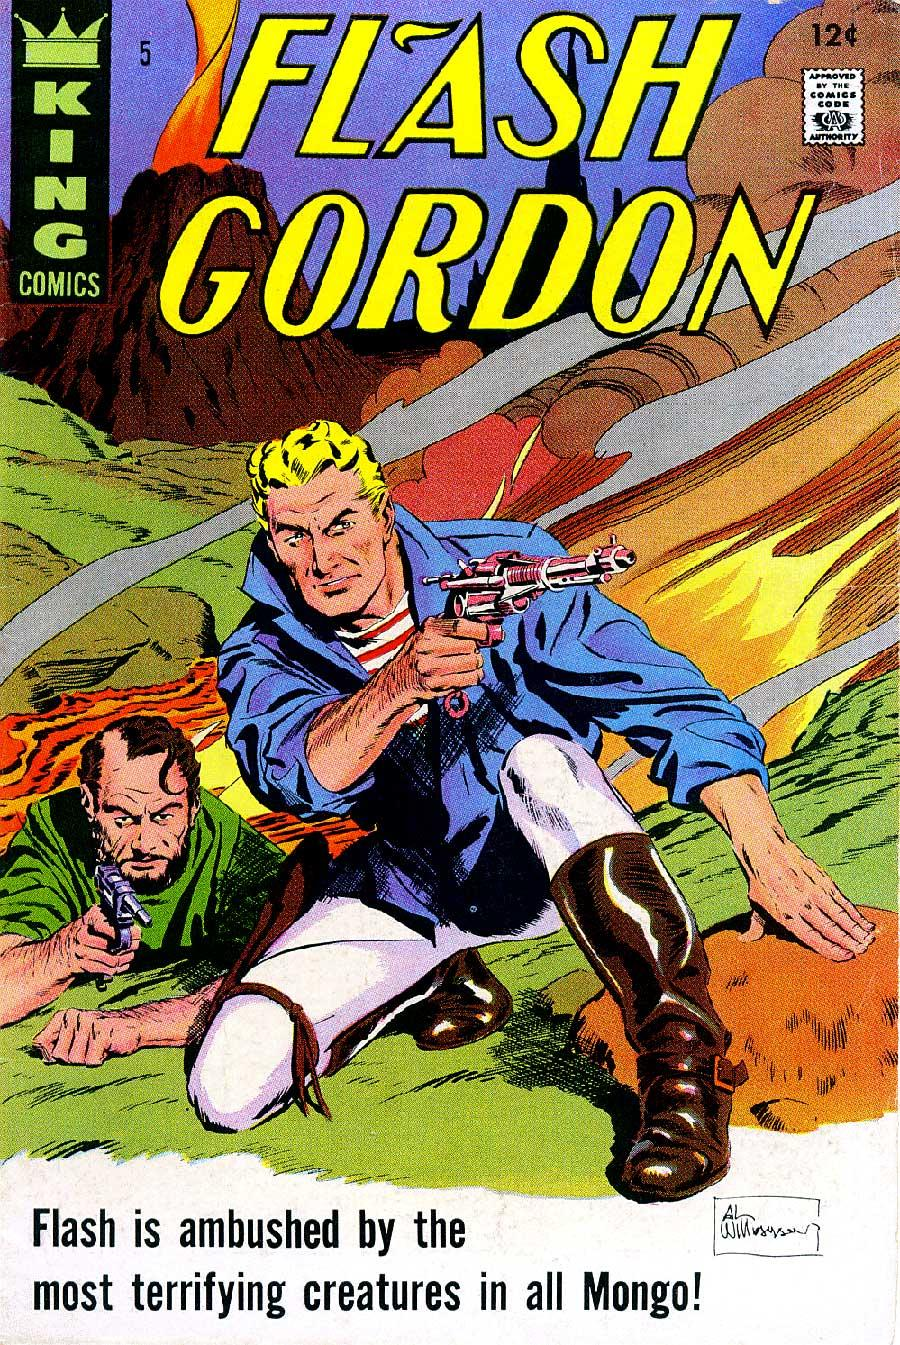 Flash Gordon regressa ao cinema